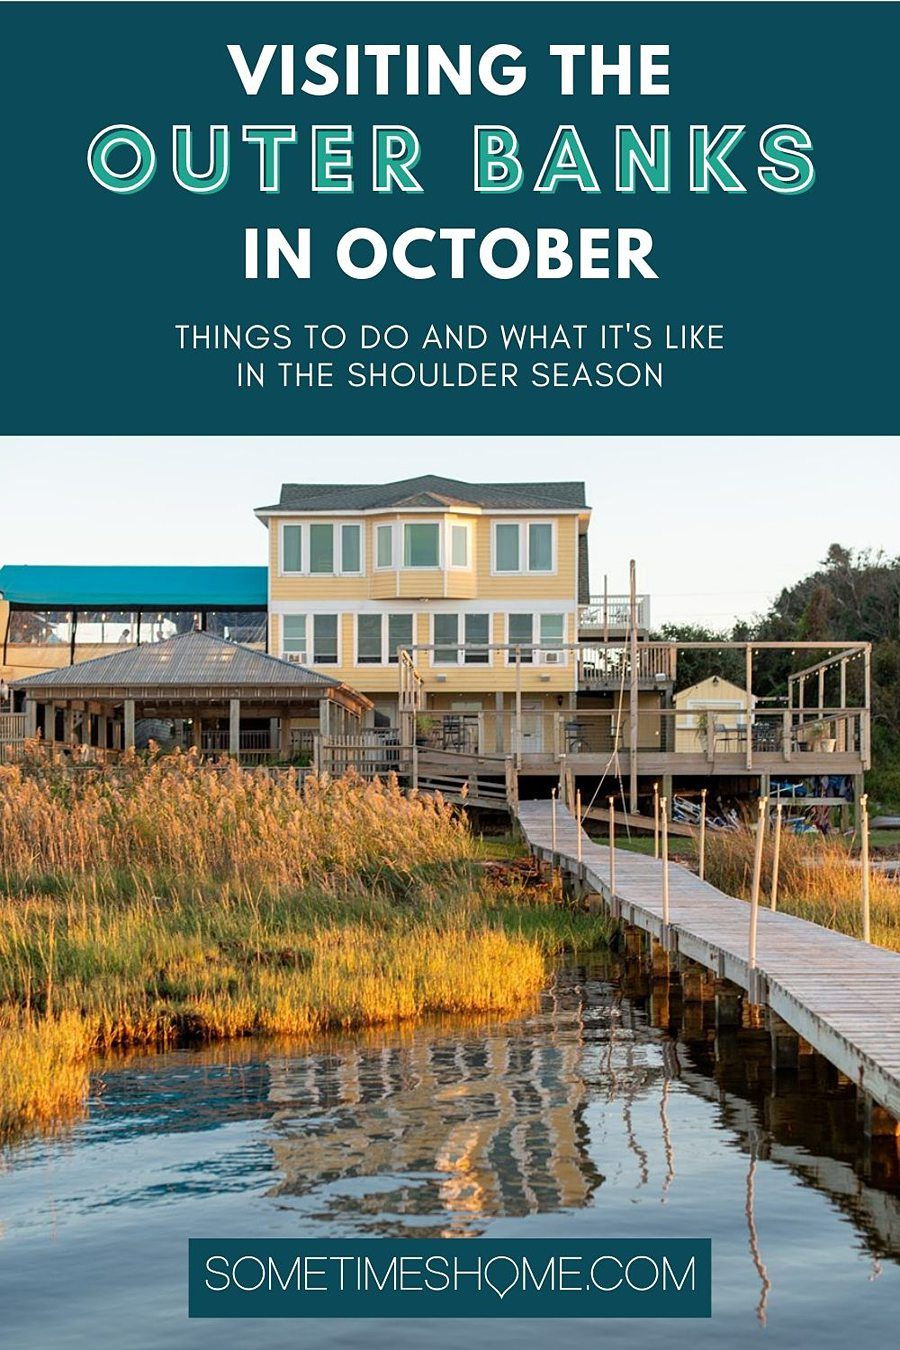 Pinterest image with a picture of a hotel overlooking the water with green and yellow beachgrass and a dock on the right side. It says Visiting the Outer Banks in October.